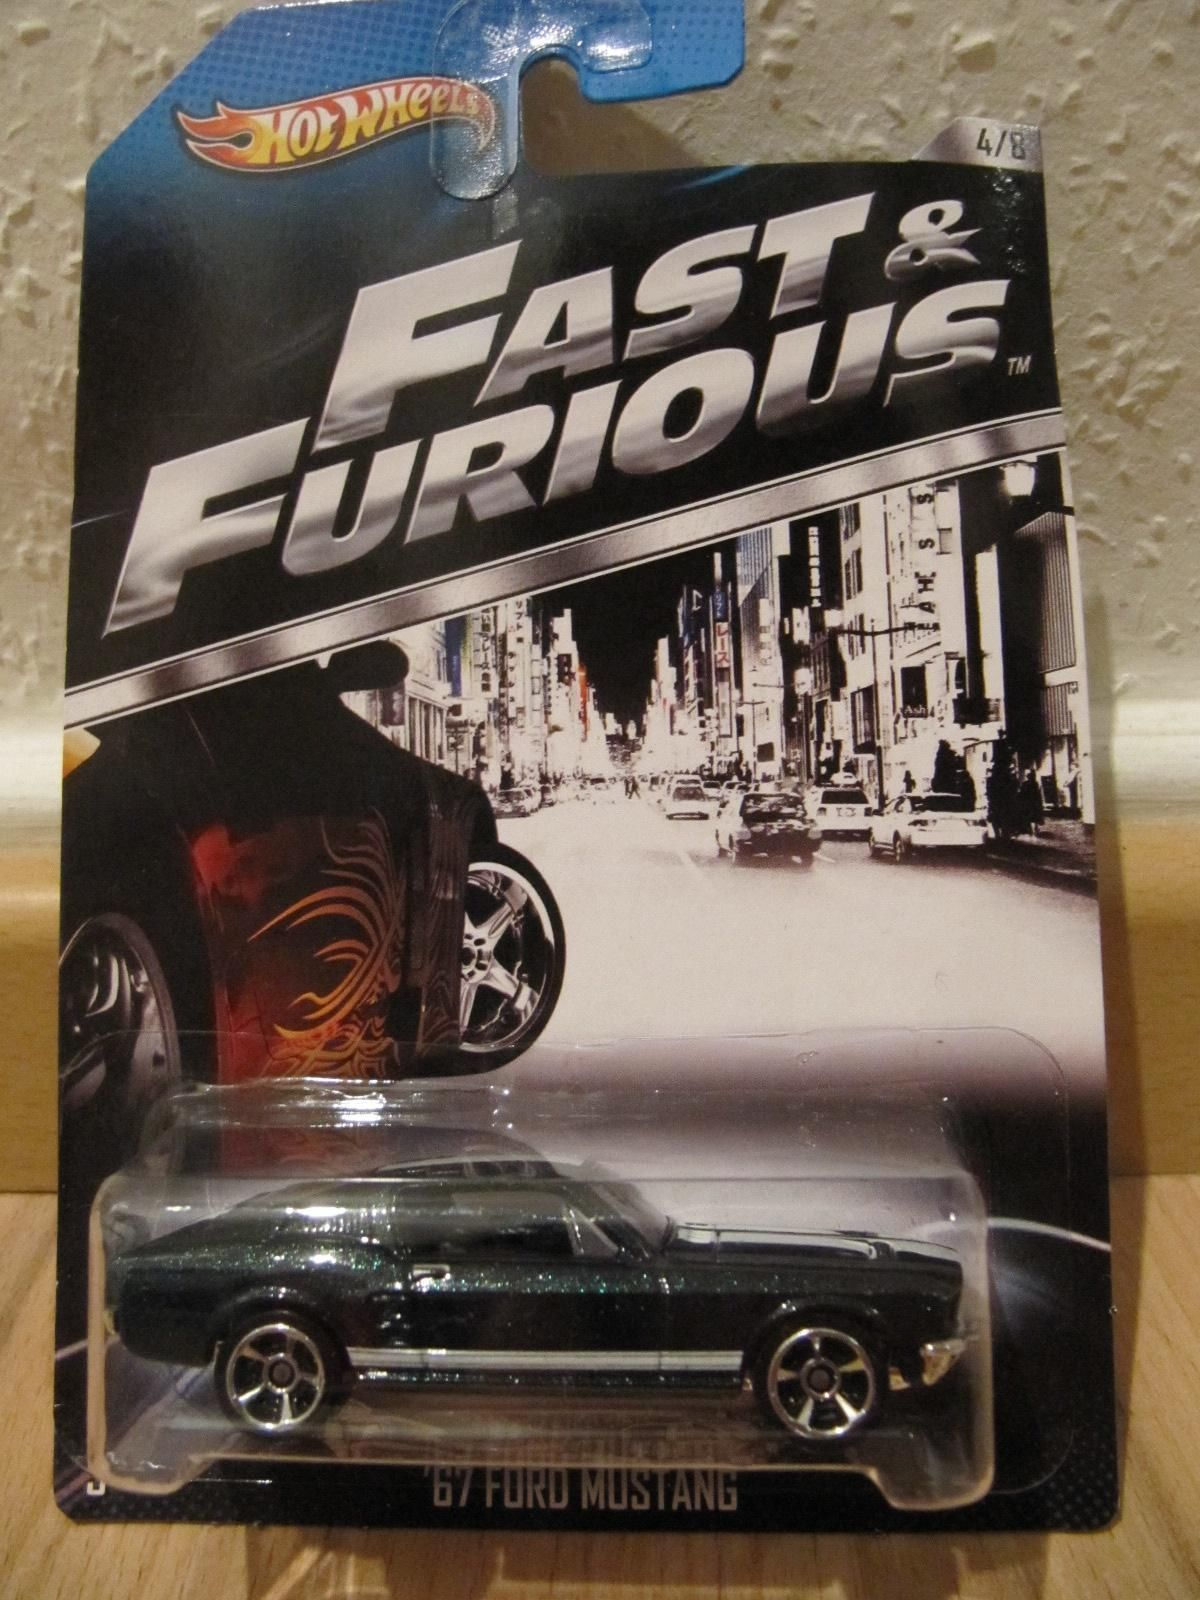 Hot wheels ford mustang fast furious movie car black 1967